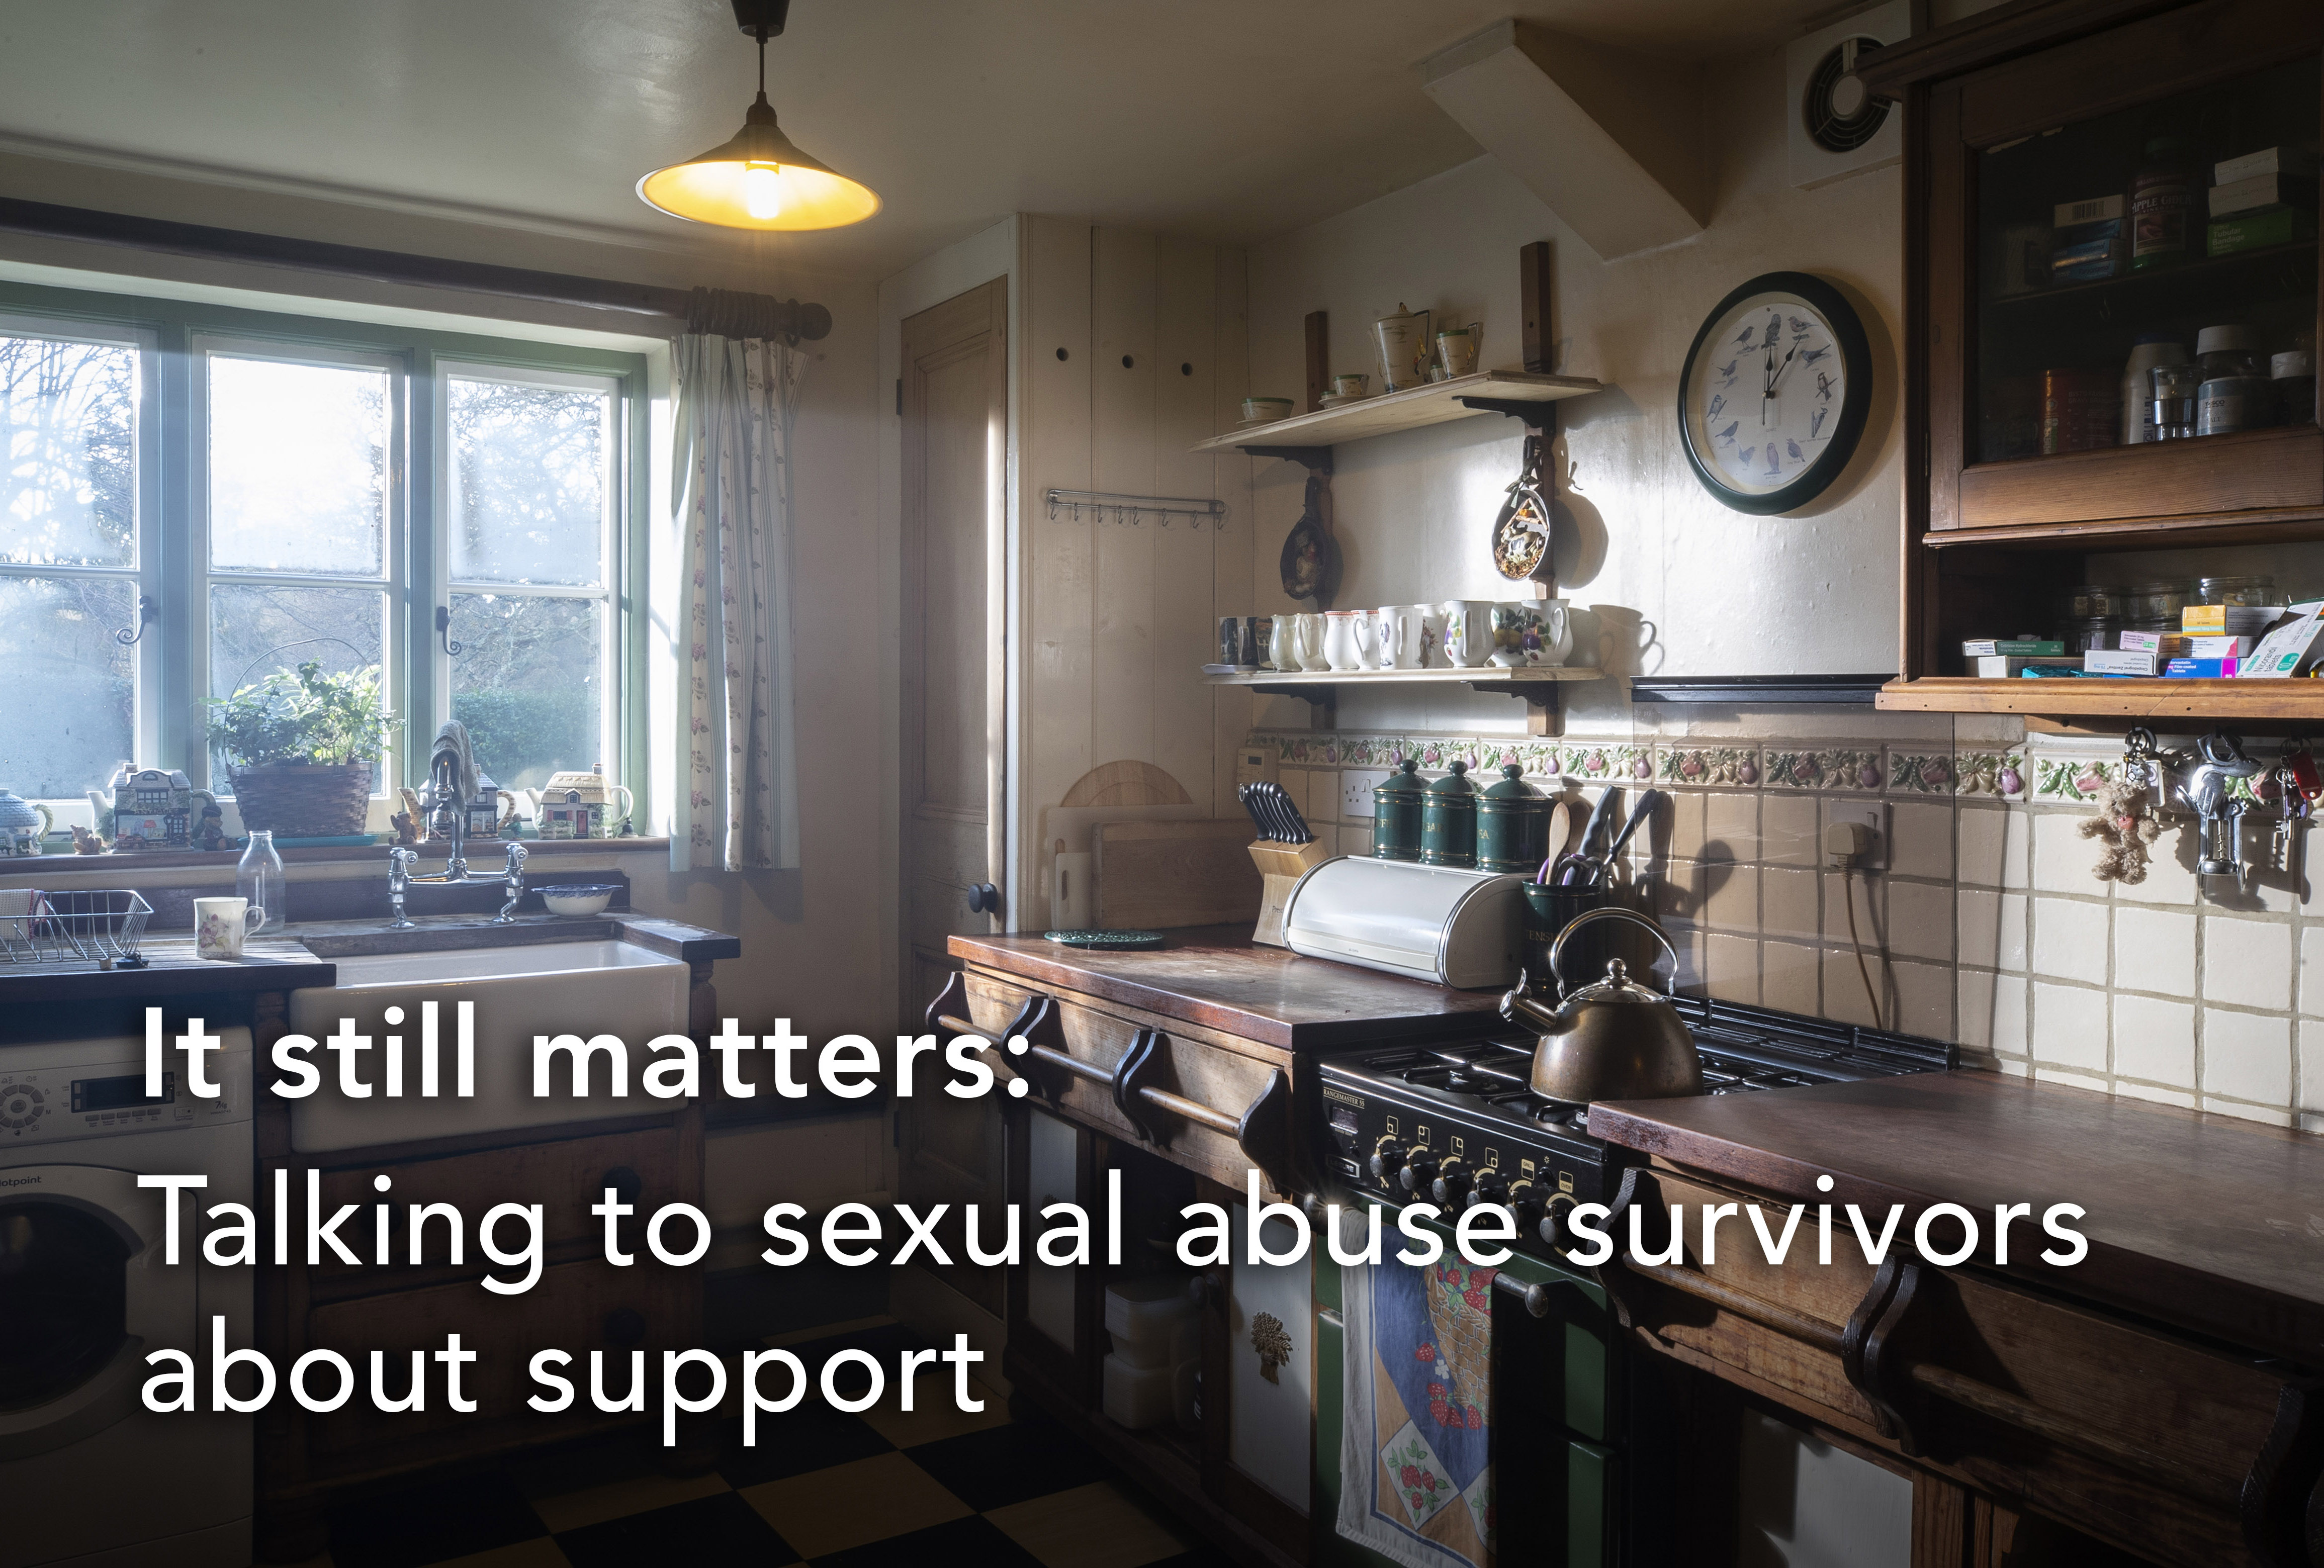 The words 'It still matters: Talking to sexual abuse survivors about support' are overlaid on a photograph of a typical 1980s kitchen. A sink, washing machine and hob with a kettle are visible. Daylight streams in through a window. The tiles and crockery have bird and plant patterns evocative of the era.